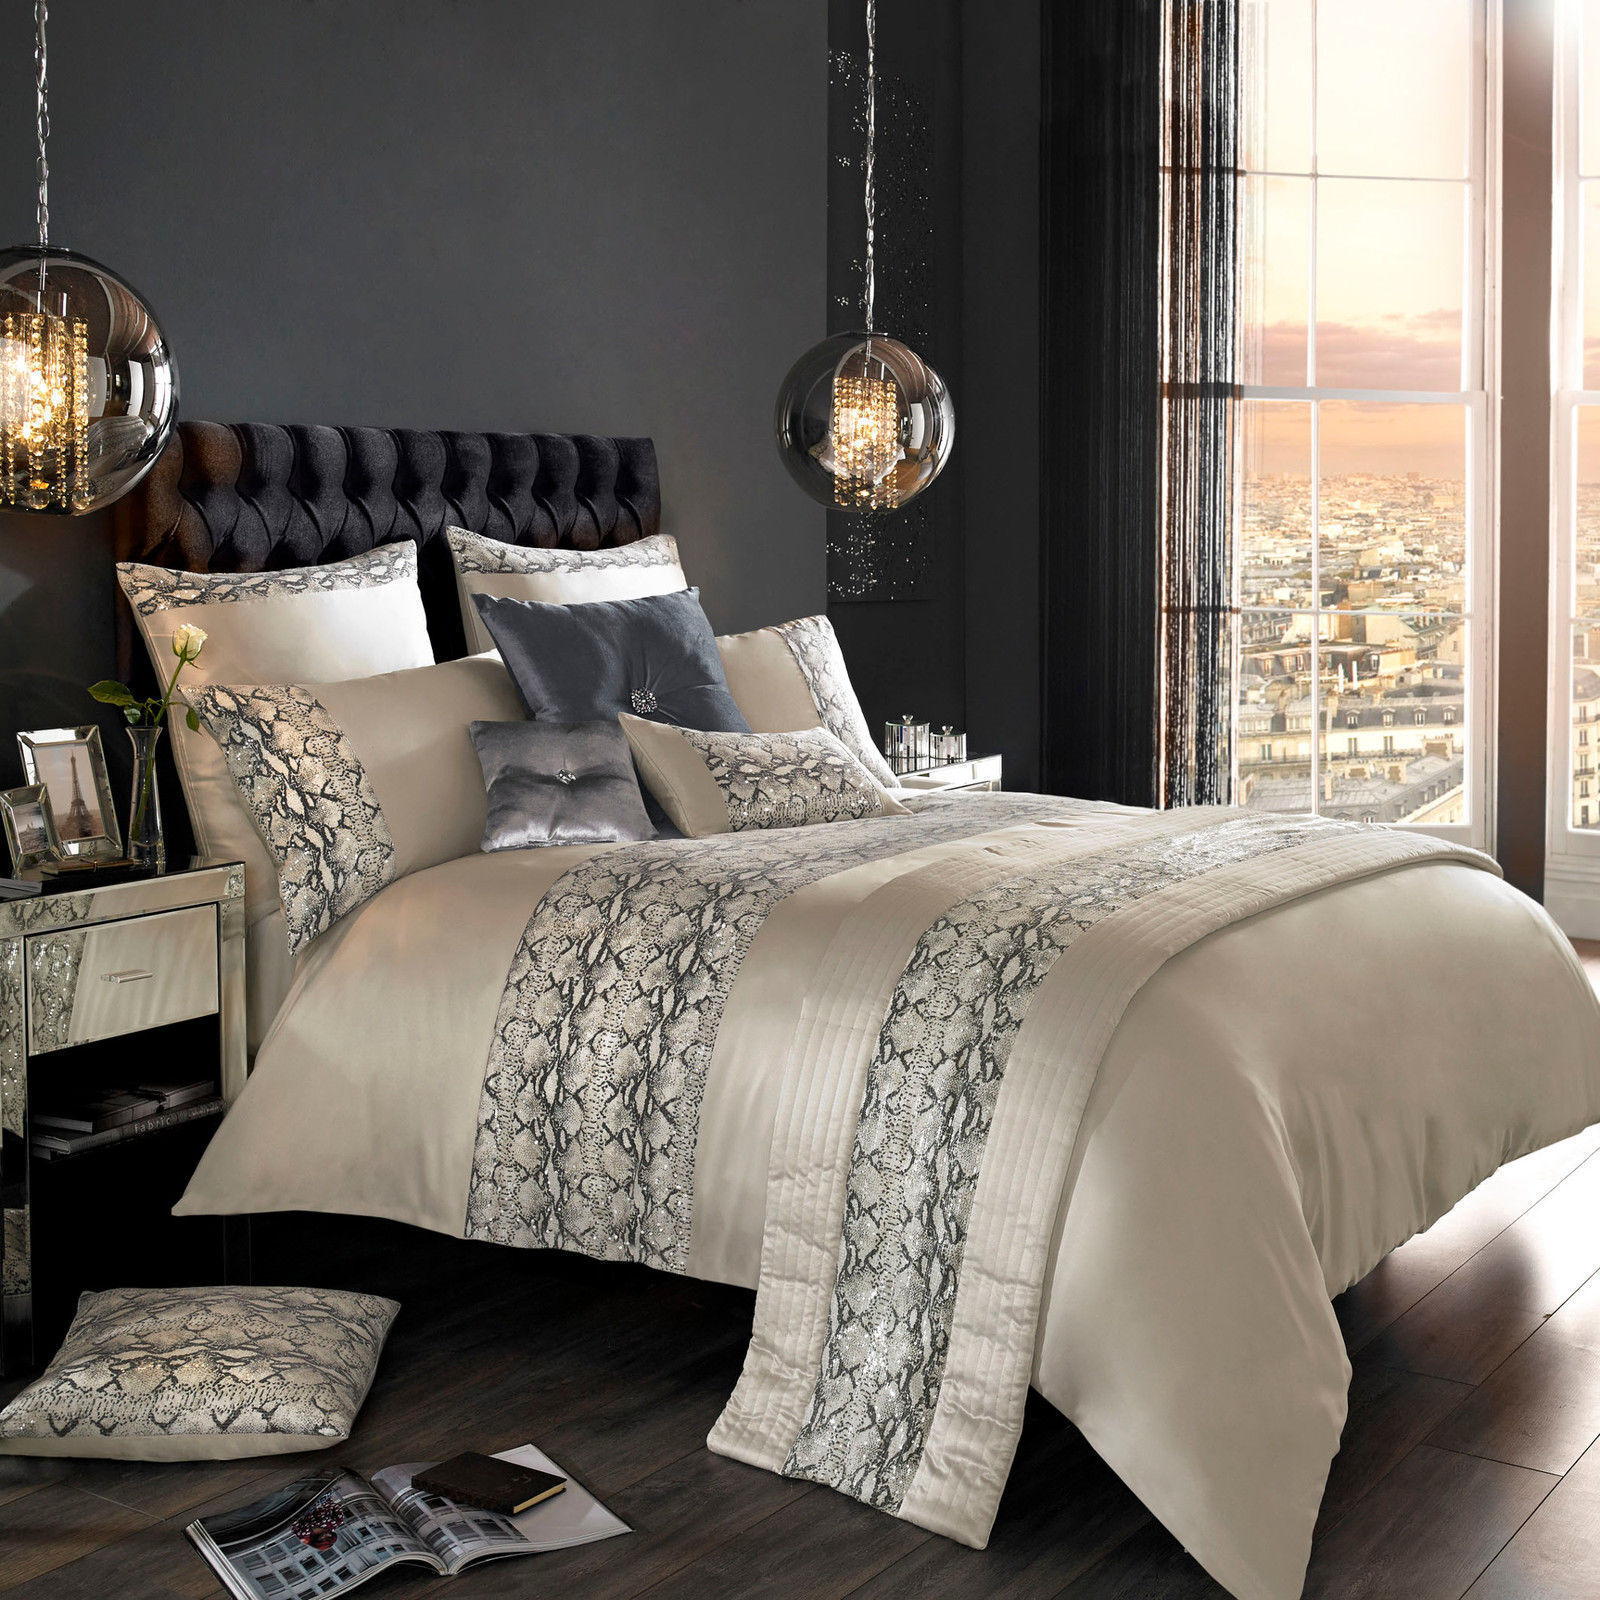 Adira Pebble Bedlinen by Kylie Minogue At Home... Lowest Price + Free&Fast Del